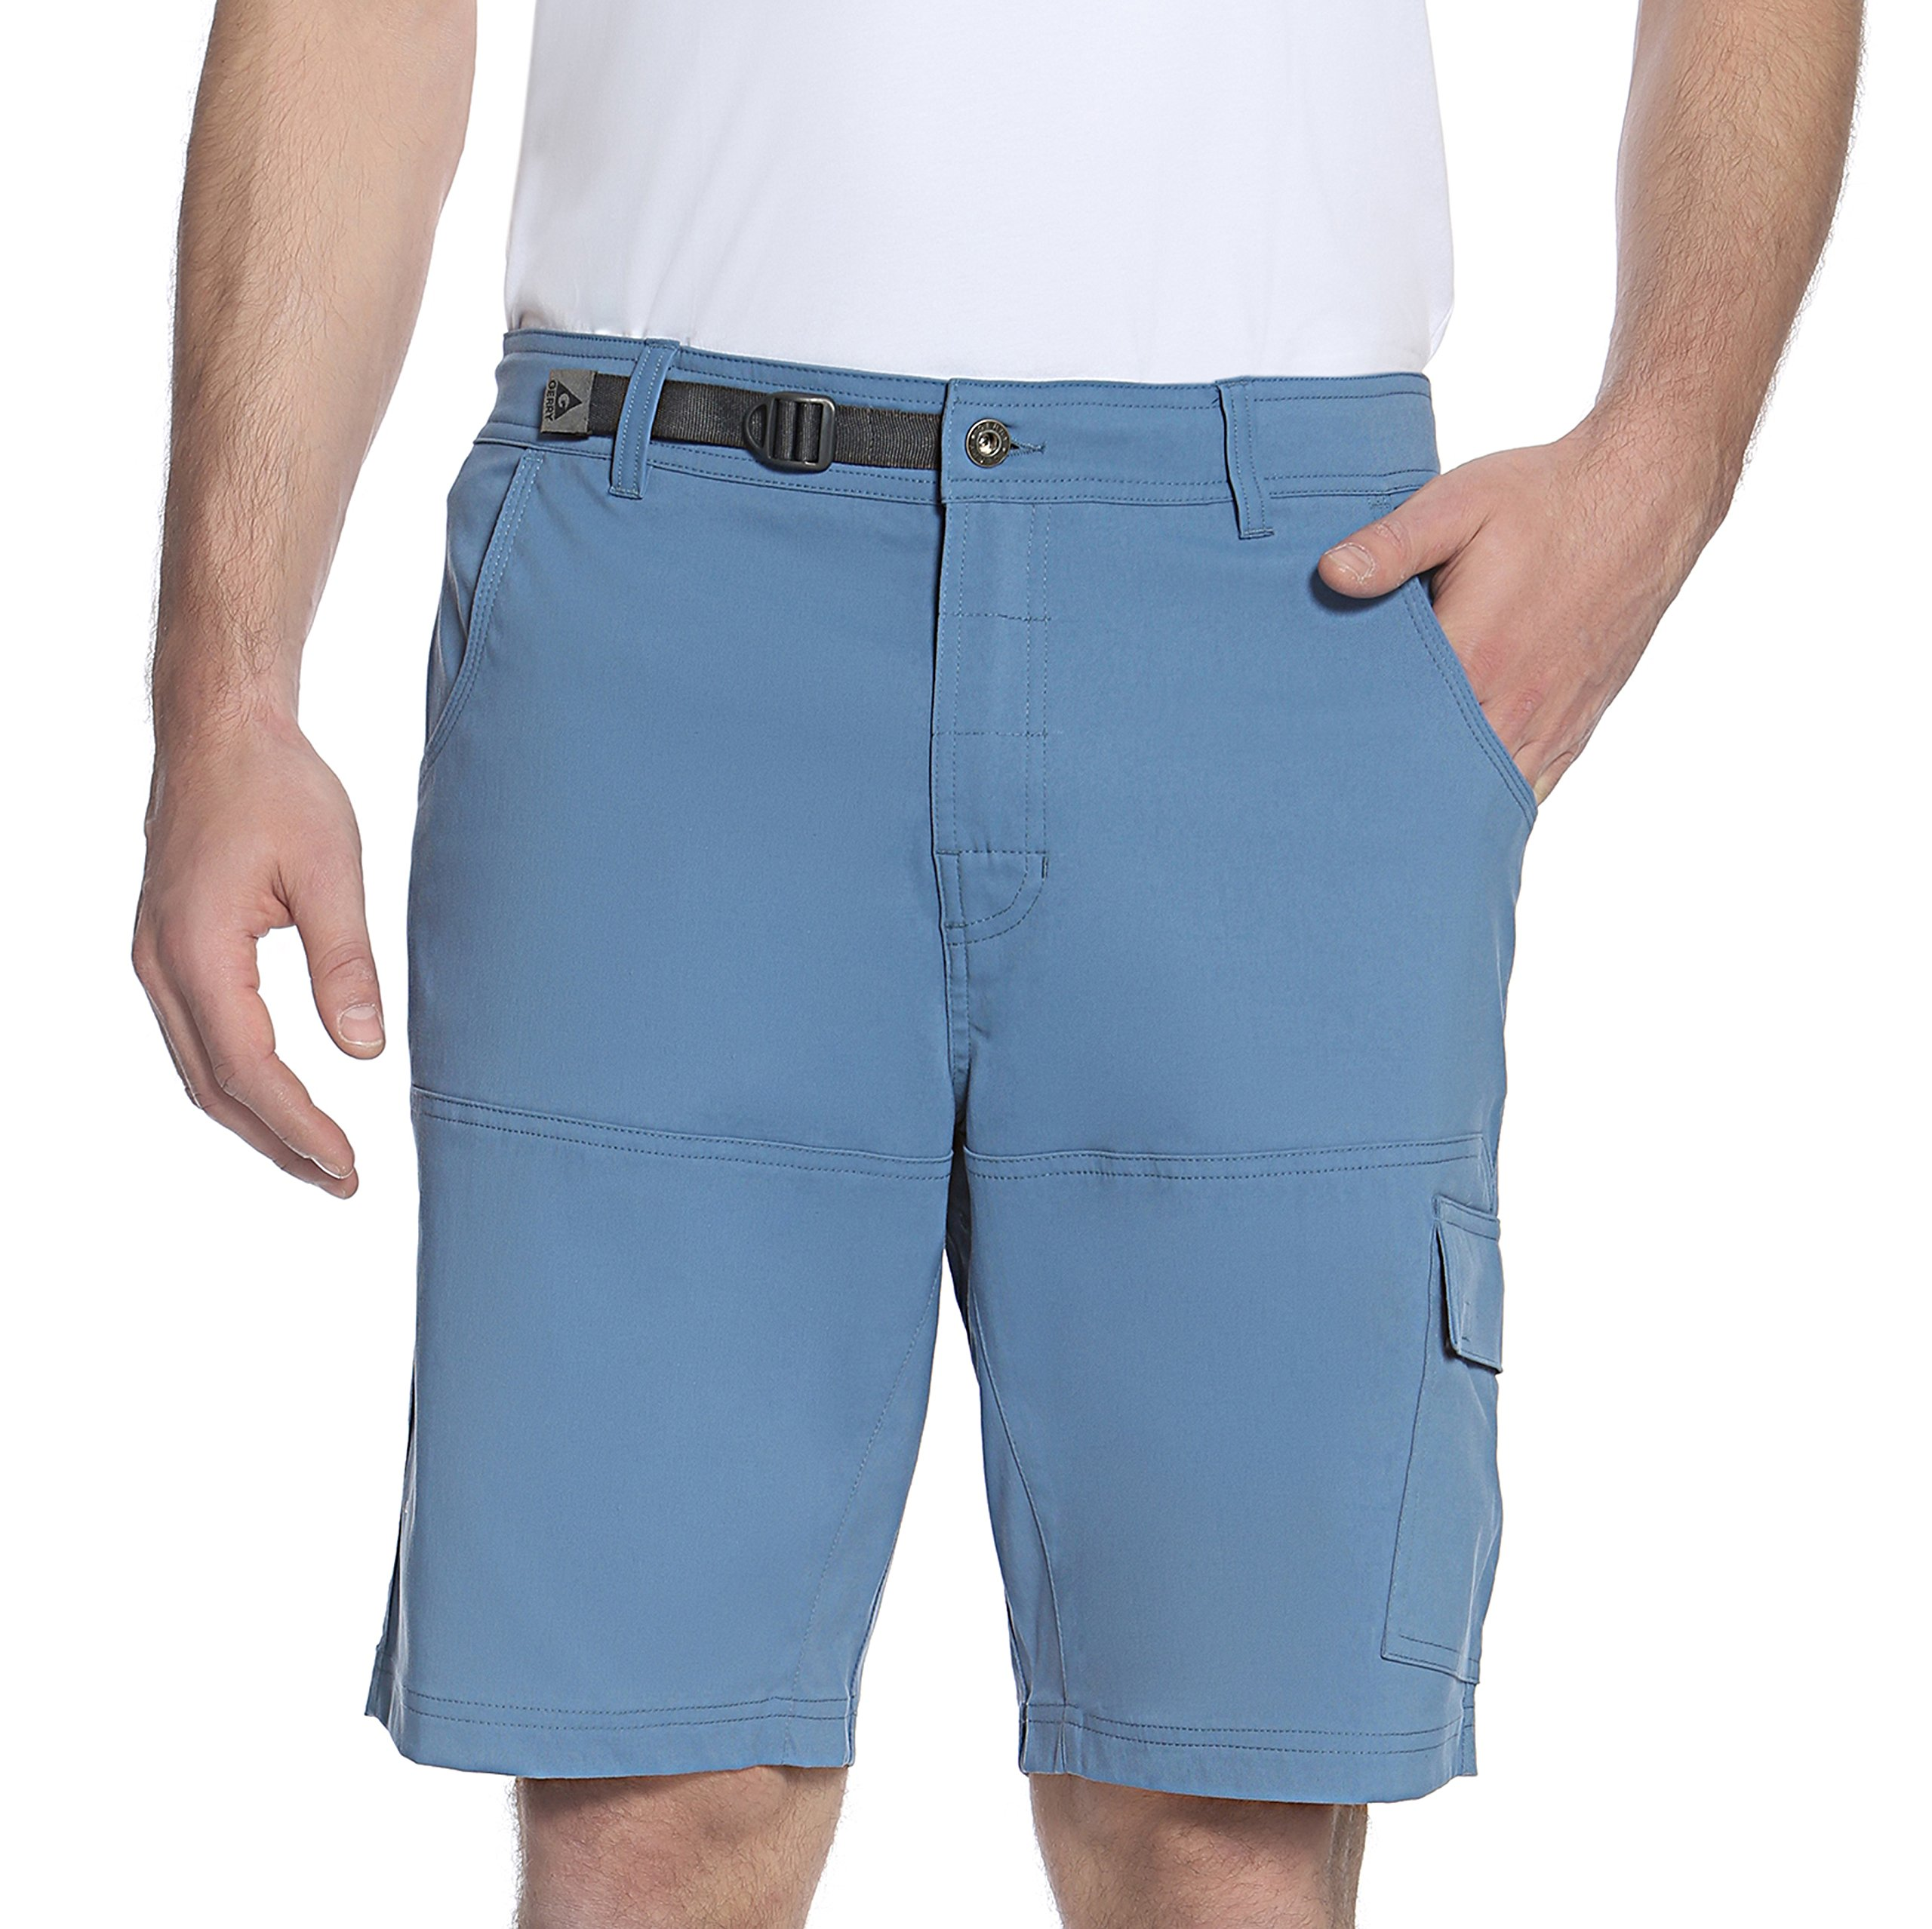 Gerry Men's Venture Flat Front Stretch Cargo Short (Canal Blue, 36) by Gerry